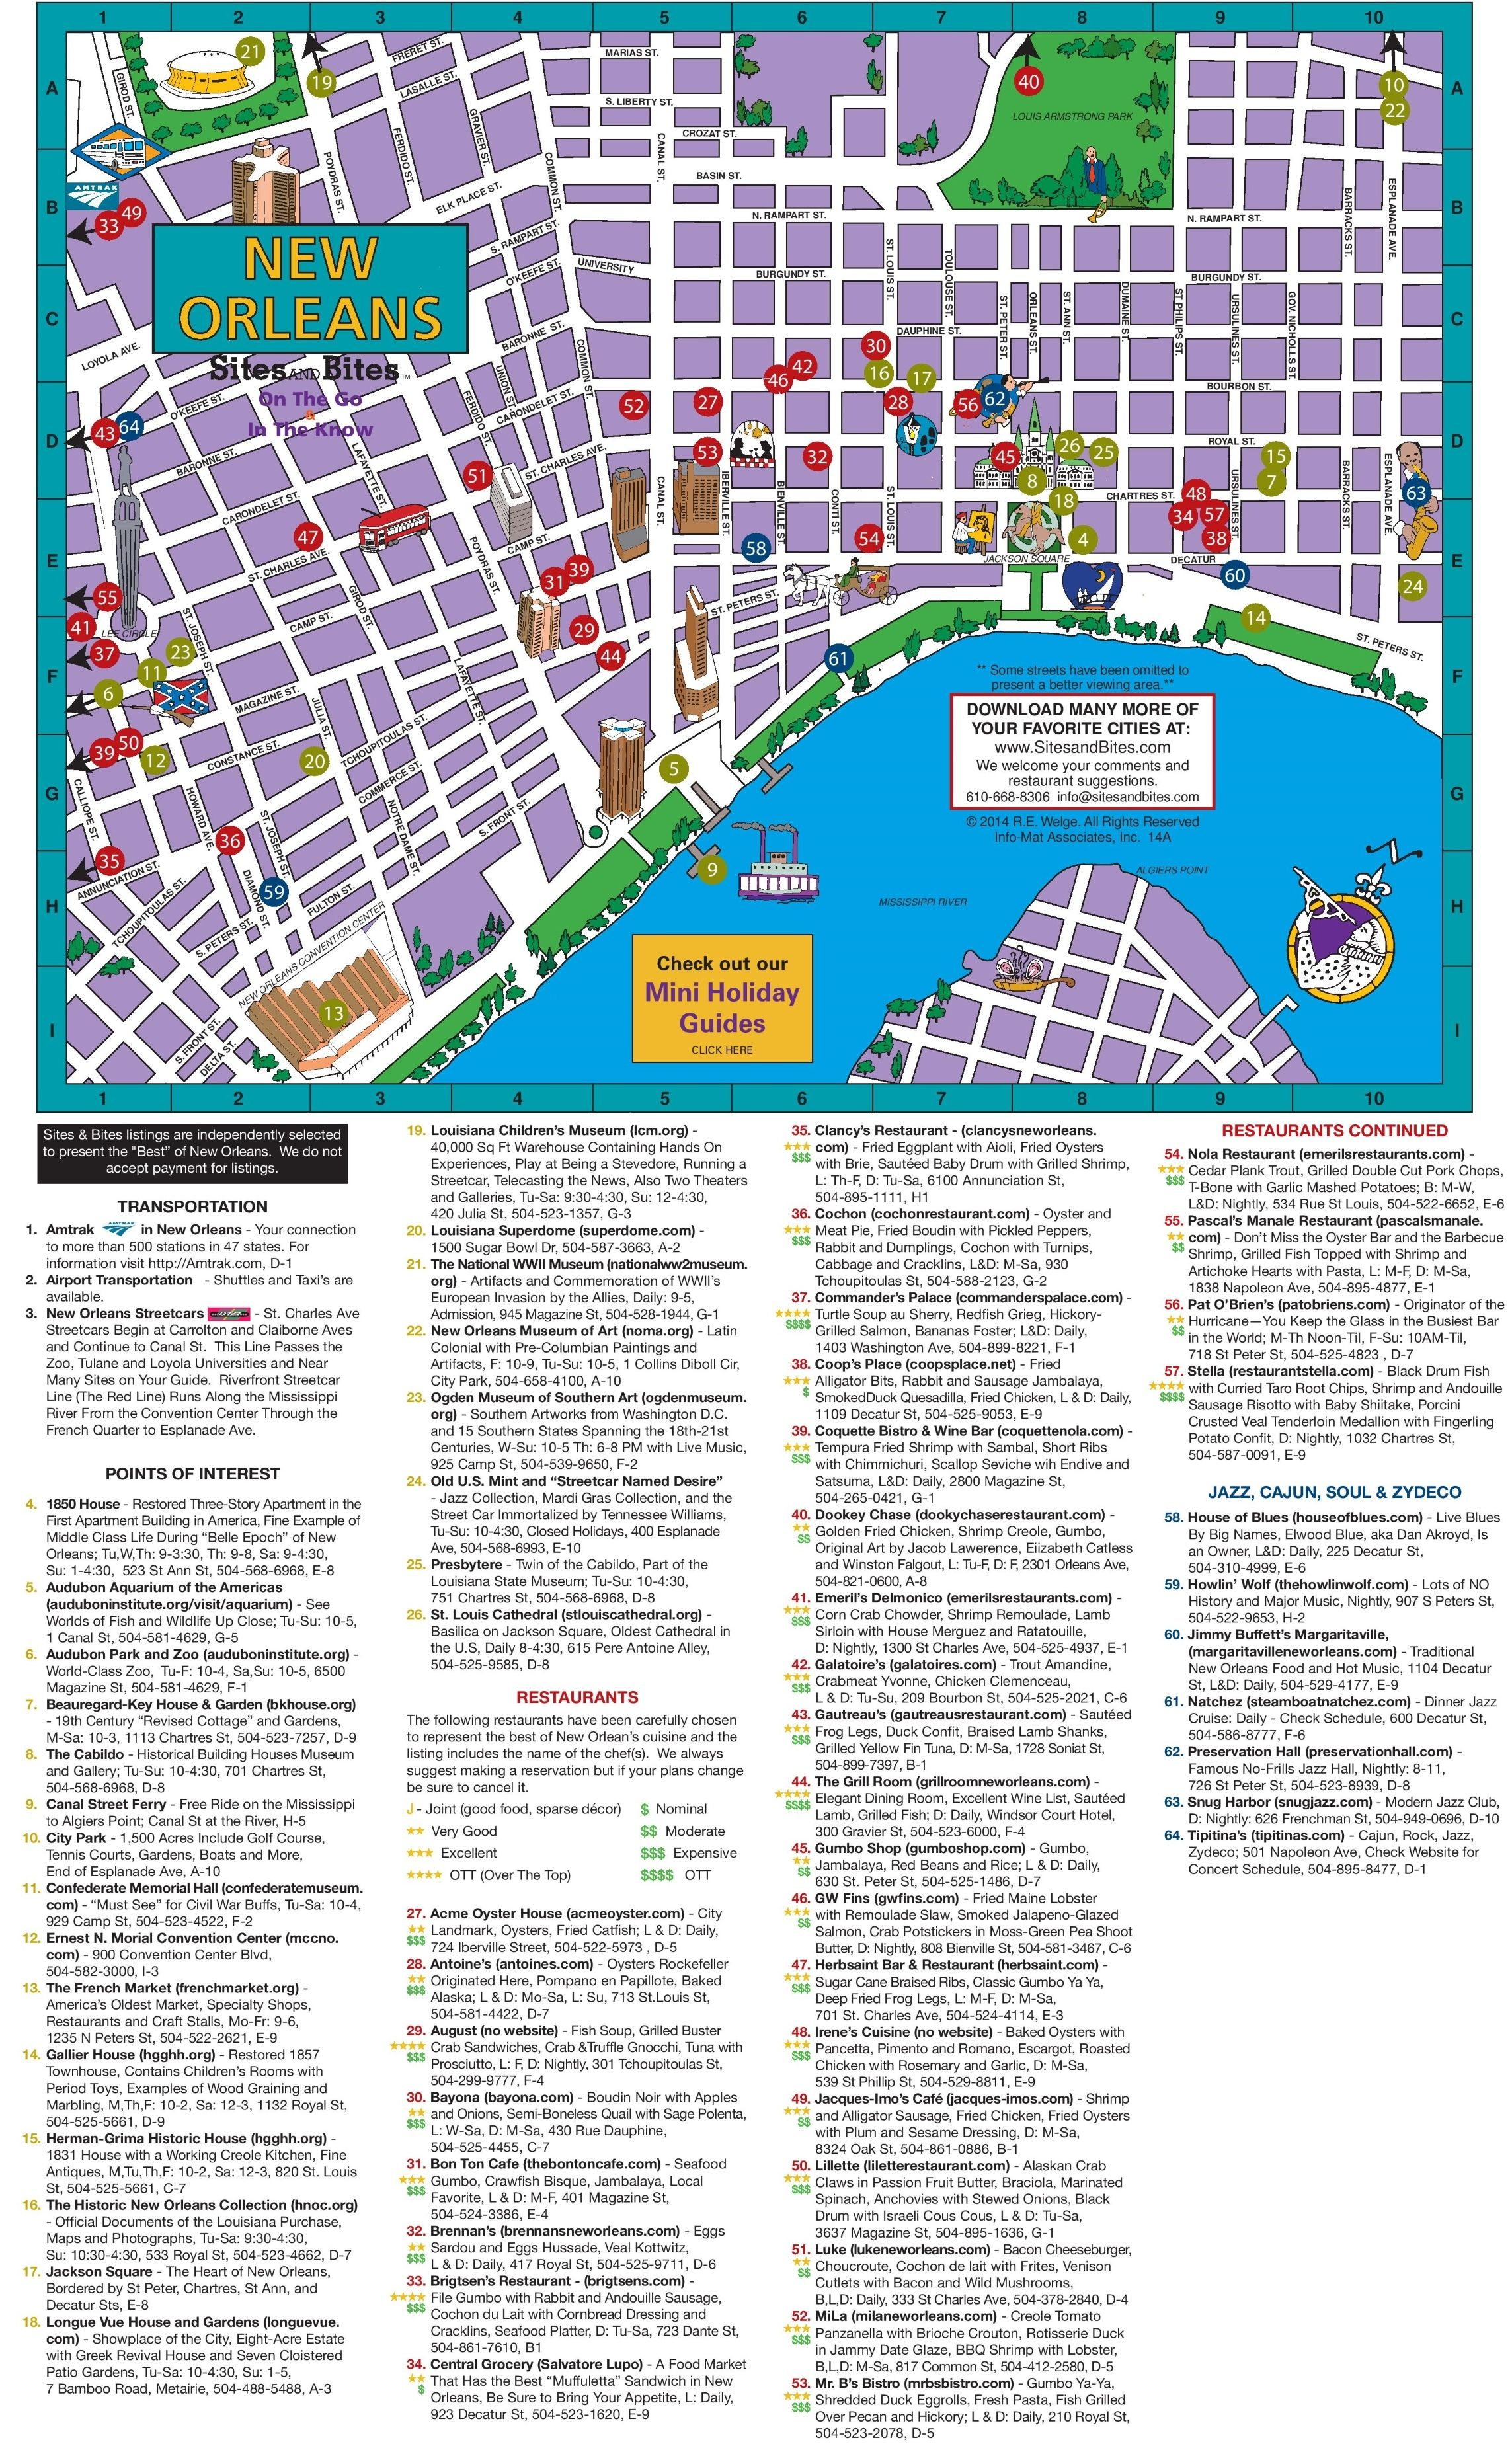 new orleans attractions map New Orleans Tourist Attractions Map Jpg 2 287 3 697 Pixels New new orleans attractions map